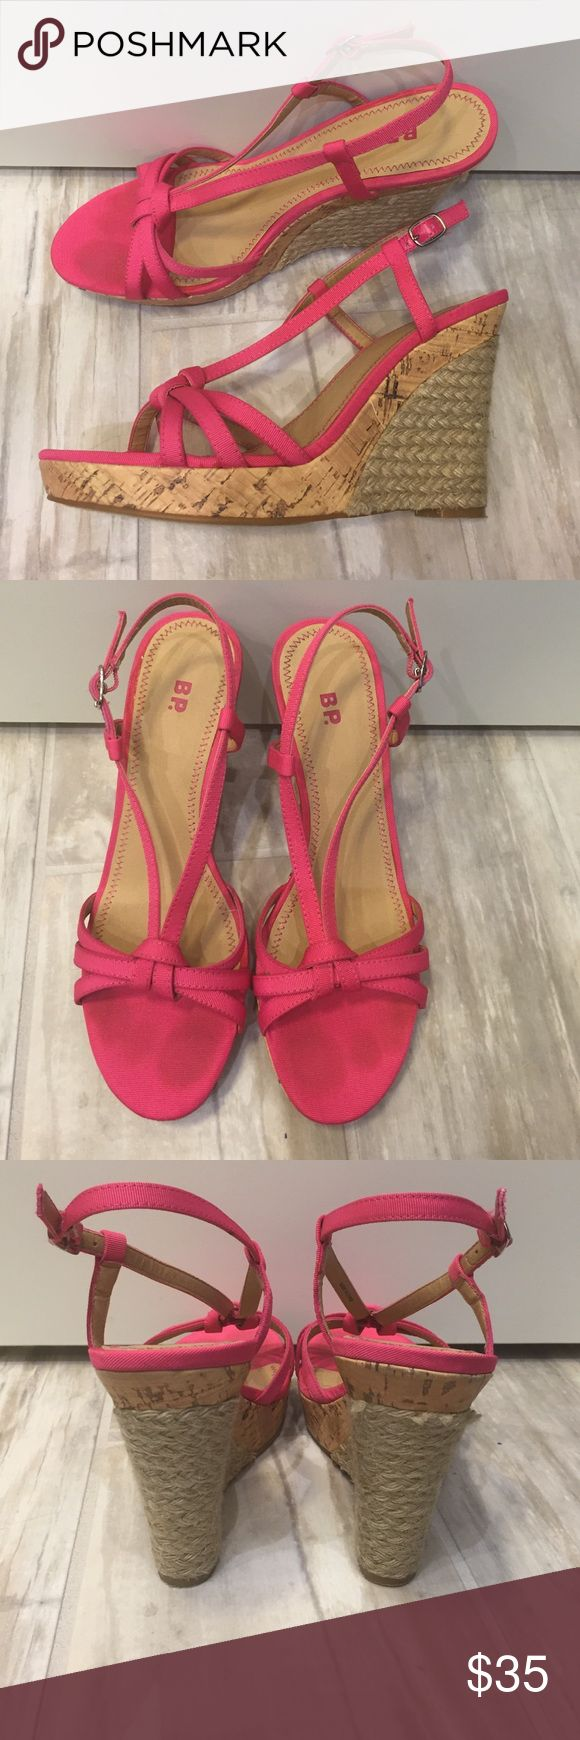 Pink sandal wedges Hot pink sandal wedges. Worn once- great condition bp Shoes Wedges